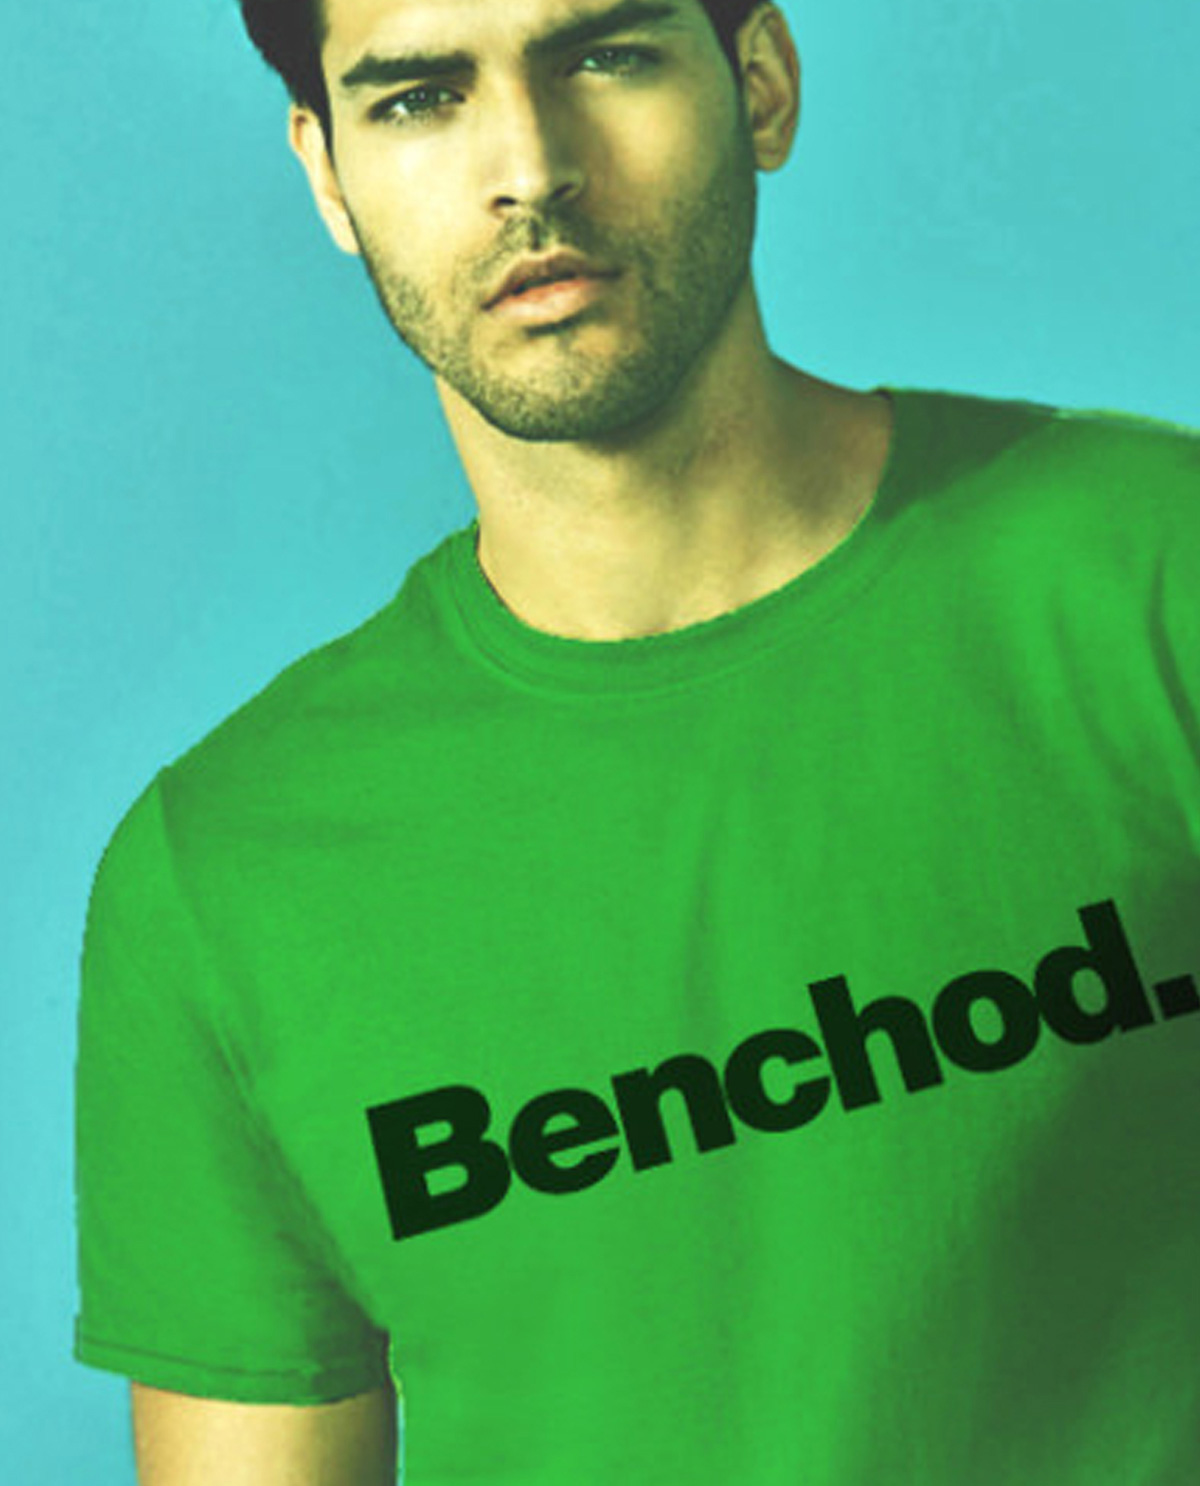 South Asian male model wearing Benchod. green SoftStyle South Asian Desi Themed Graphic Design t.shirts by Brown Man Clothing Co.